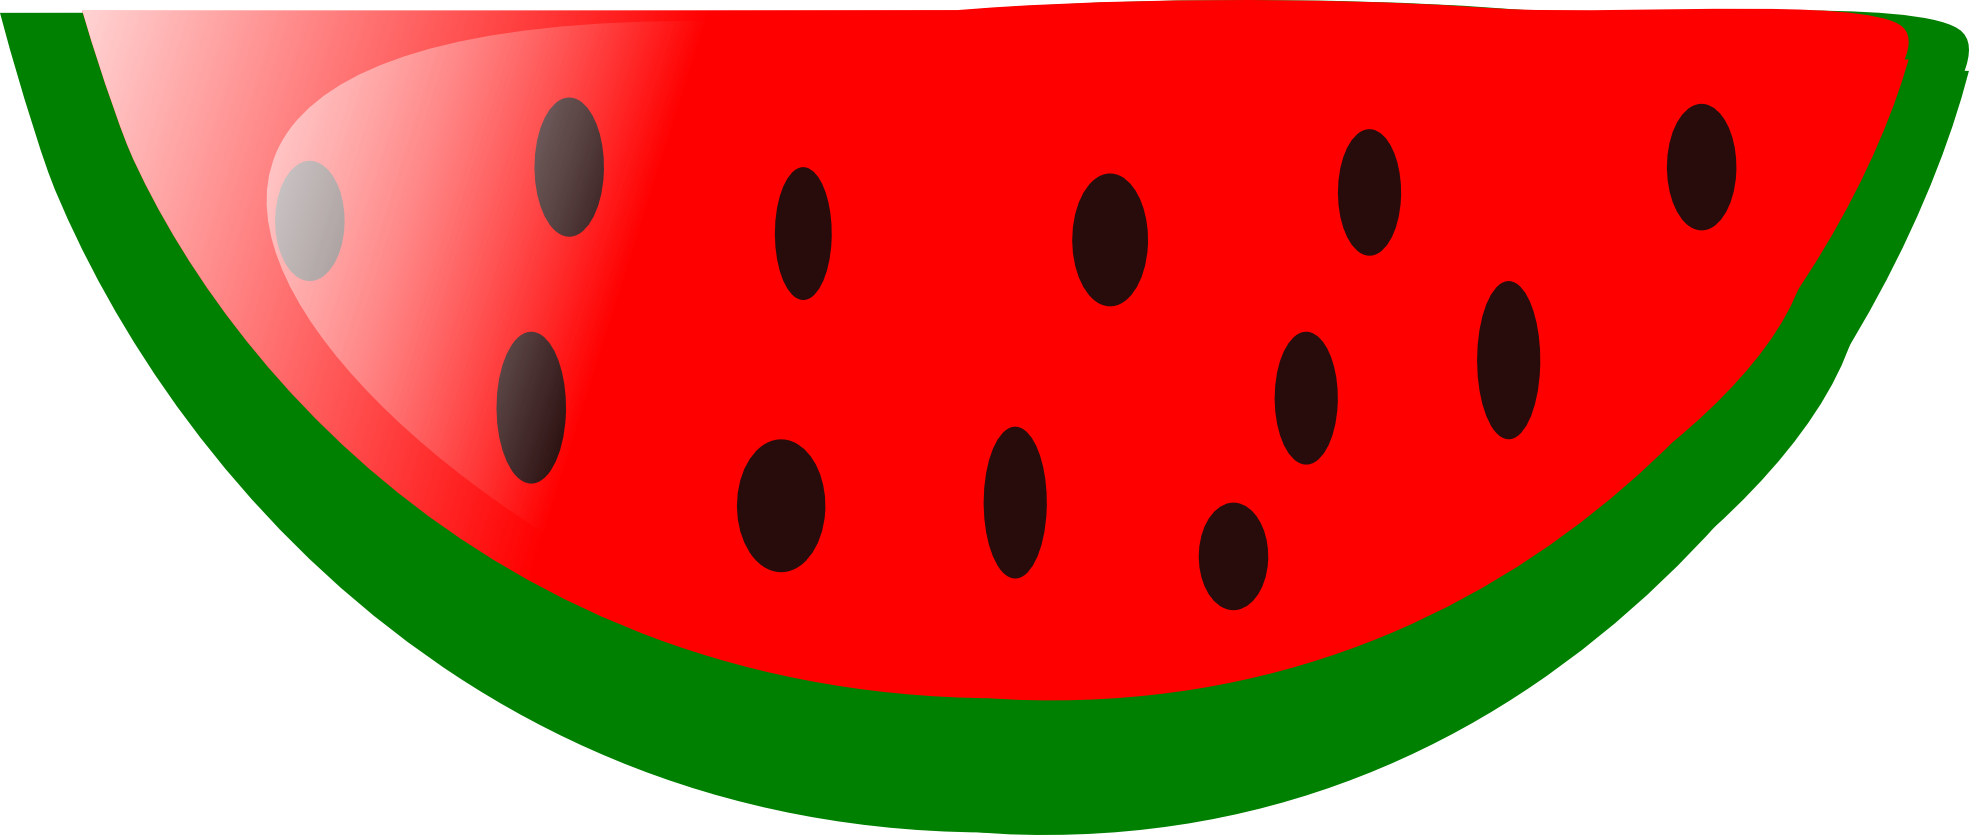 Seedless watermelon half clipart black and white png transparent download Watermelon Slice Clipart | Free download best Watermelon ... png transparent download